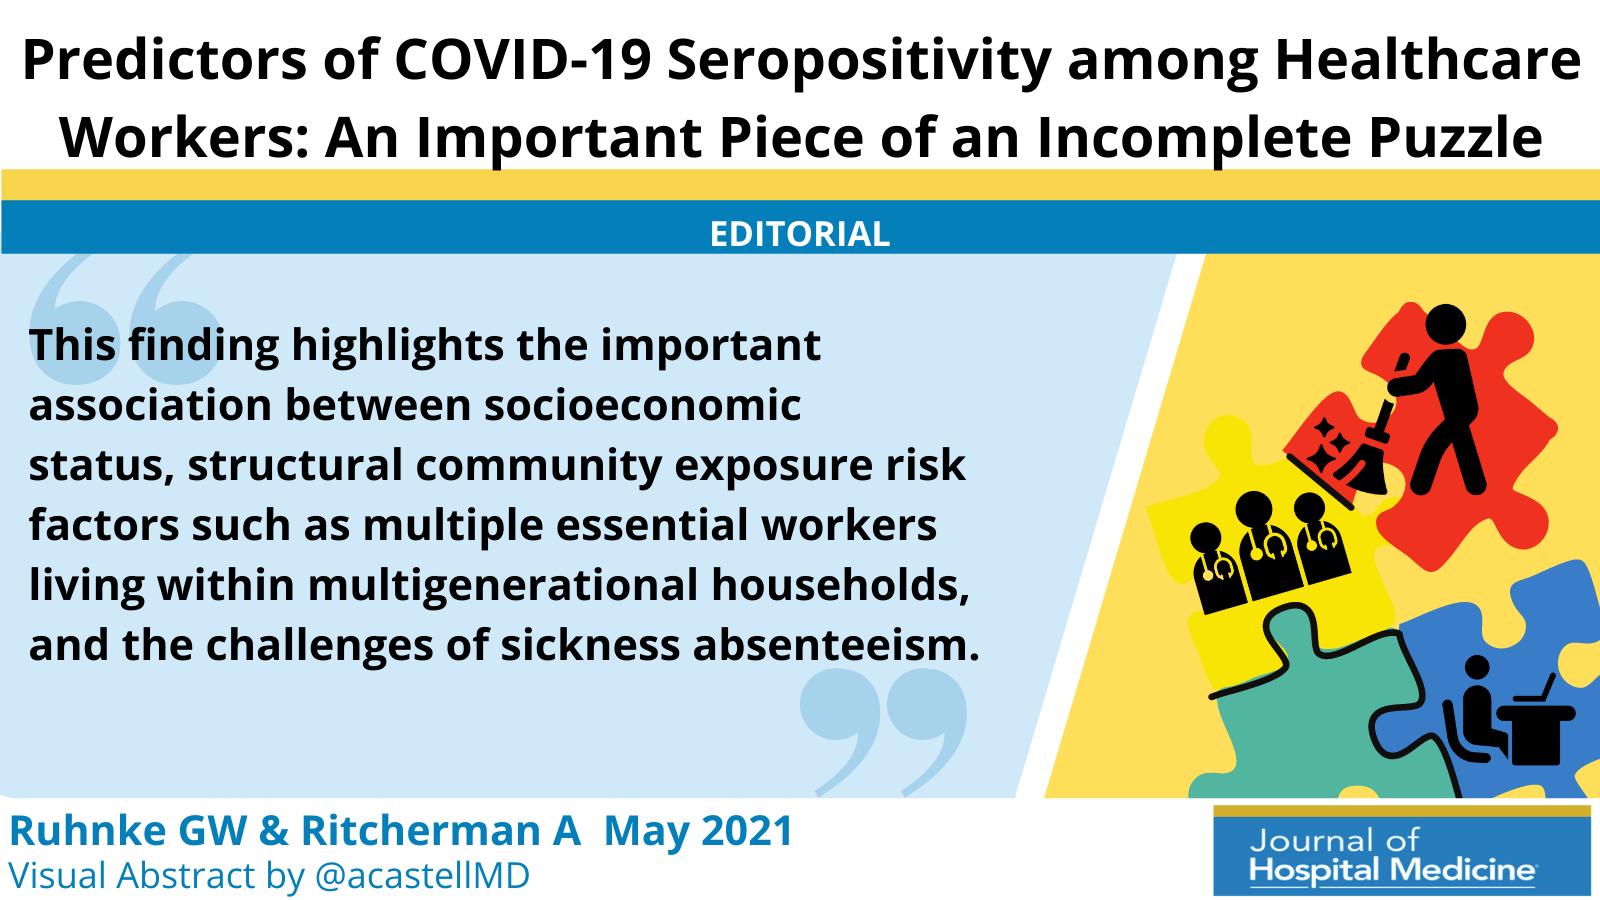 Predictors of COVID-19 Seropositivity Among Healthcare Workers: An Important Piece of an Incomplete Puzzle